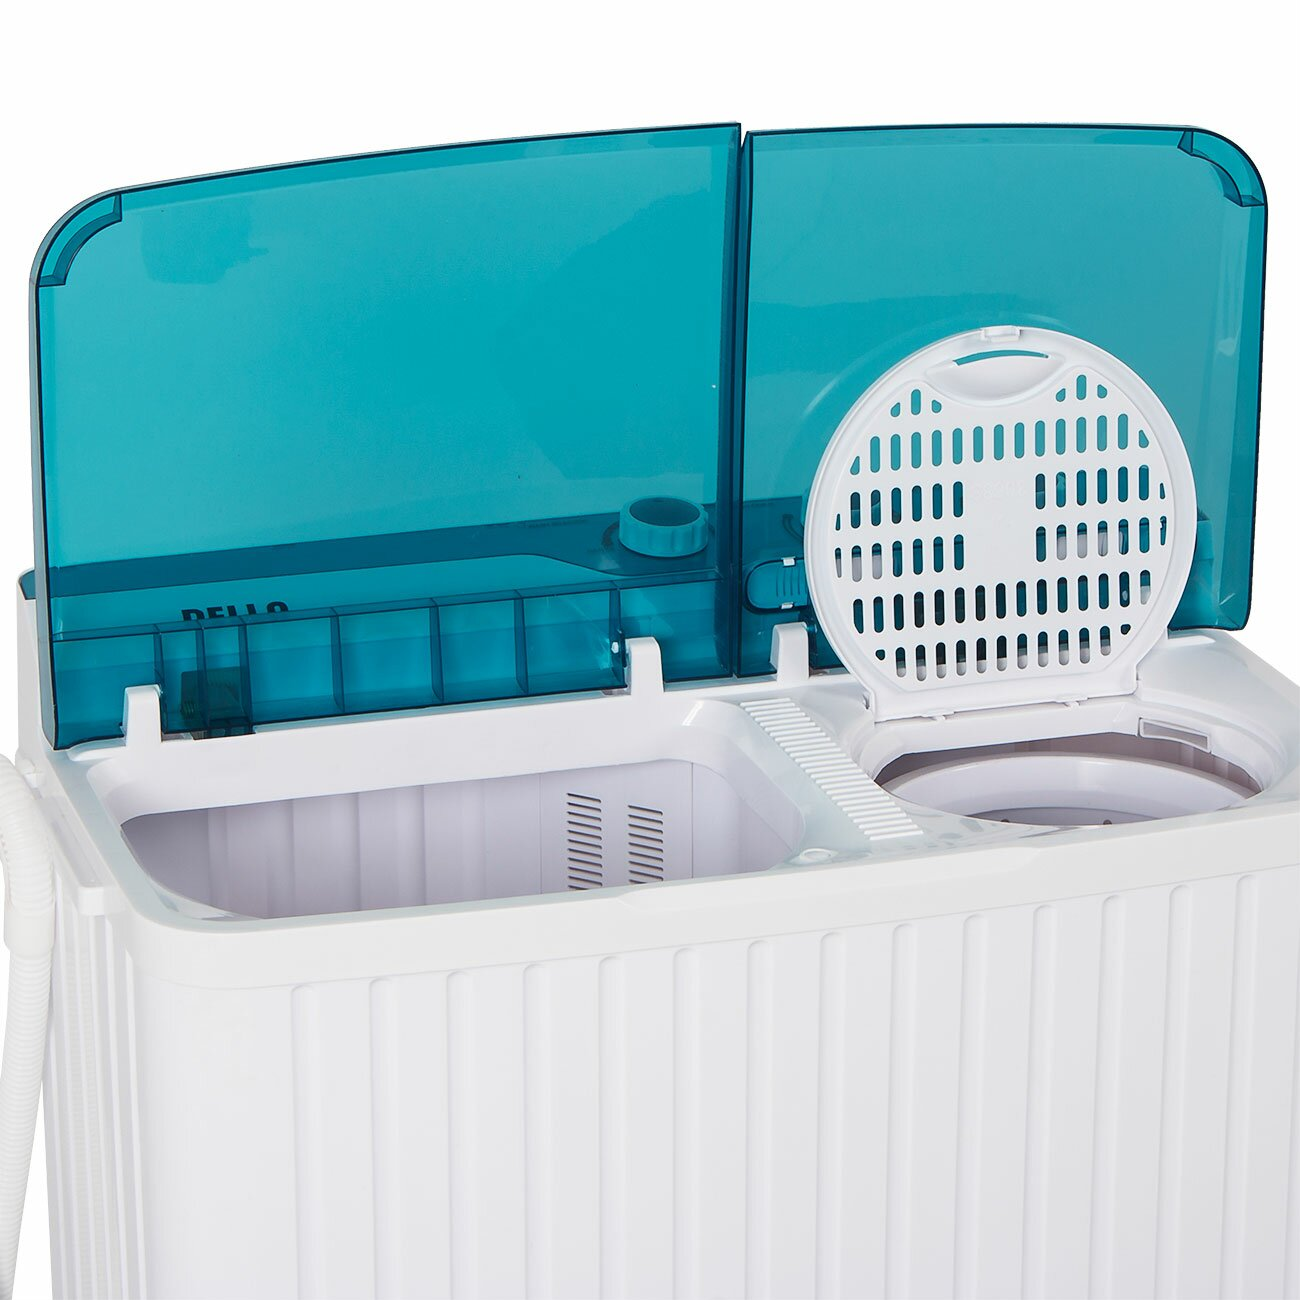 Awesome Portable Apartment Washer And Dryer Pictures - Decorating ...